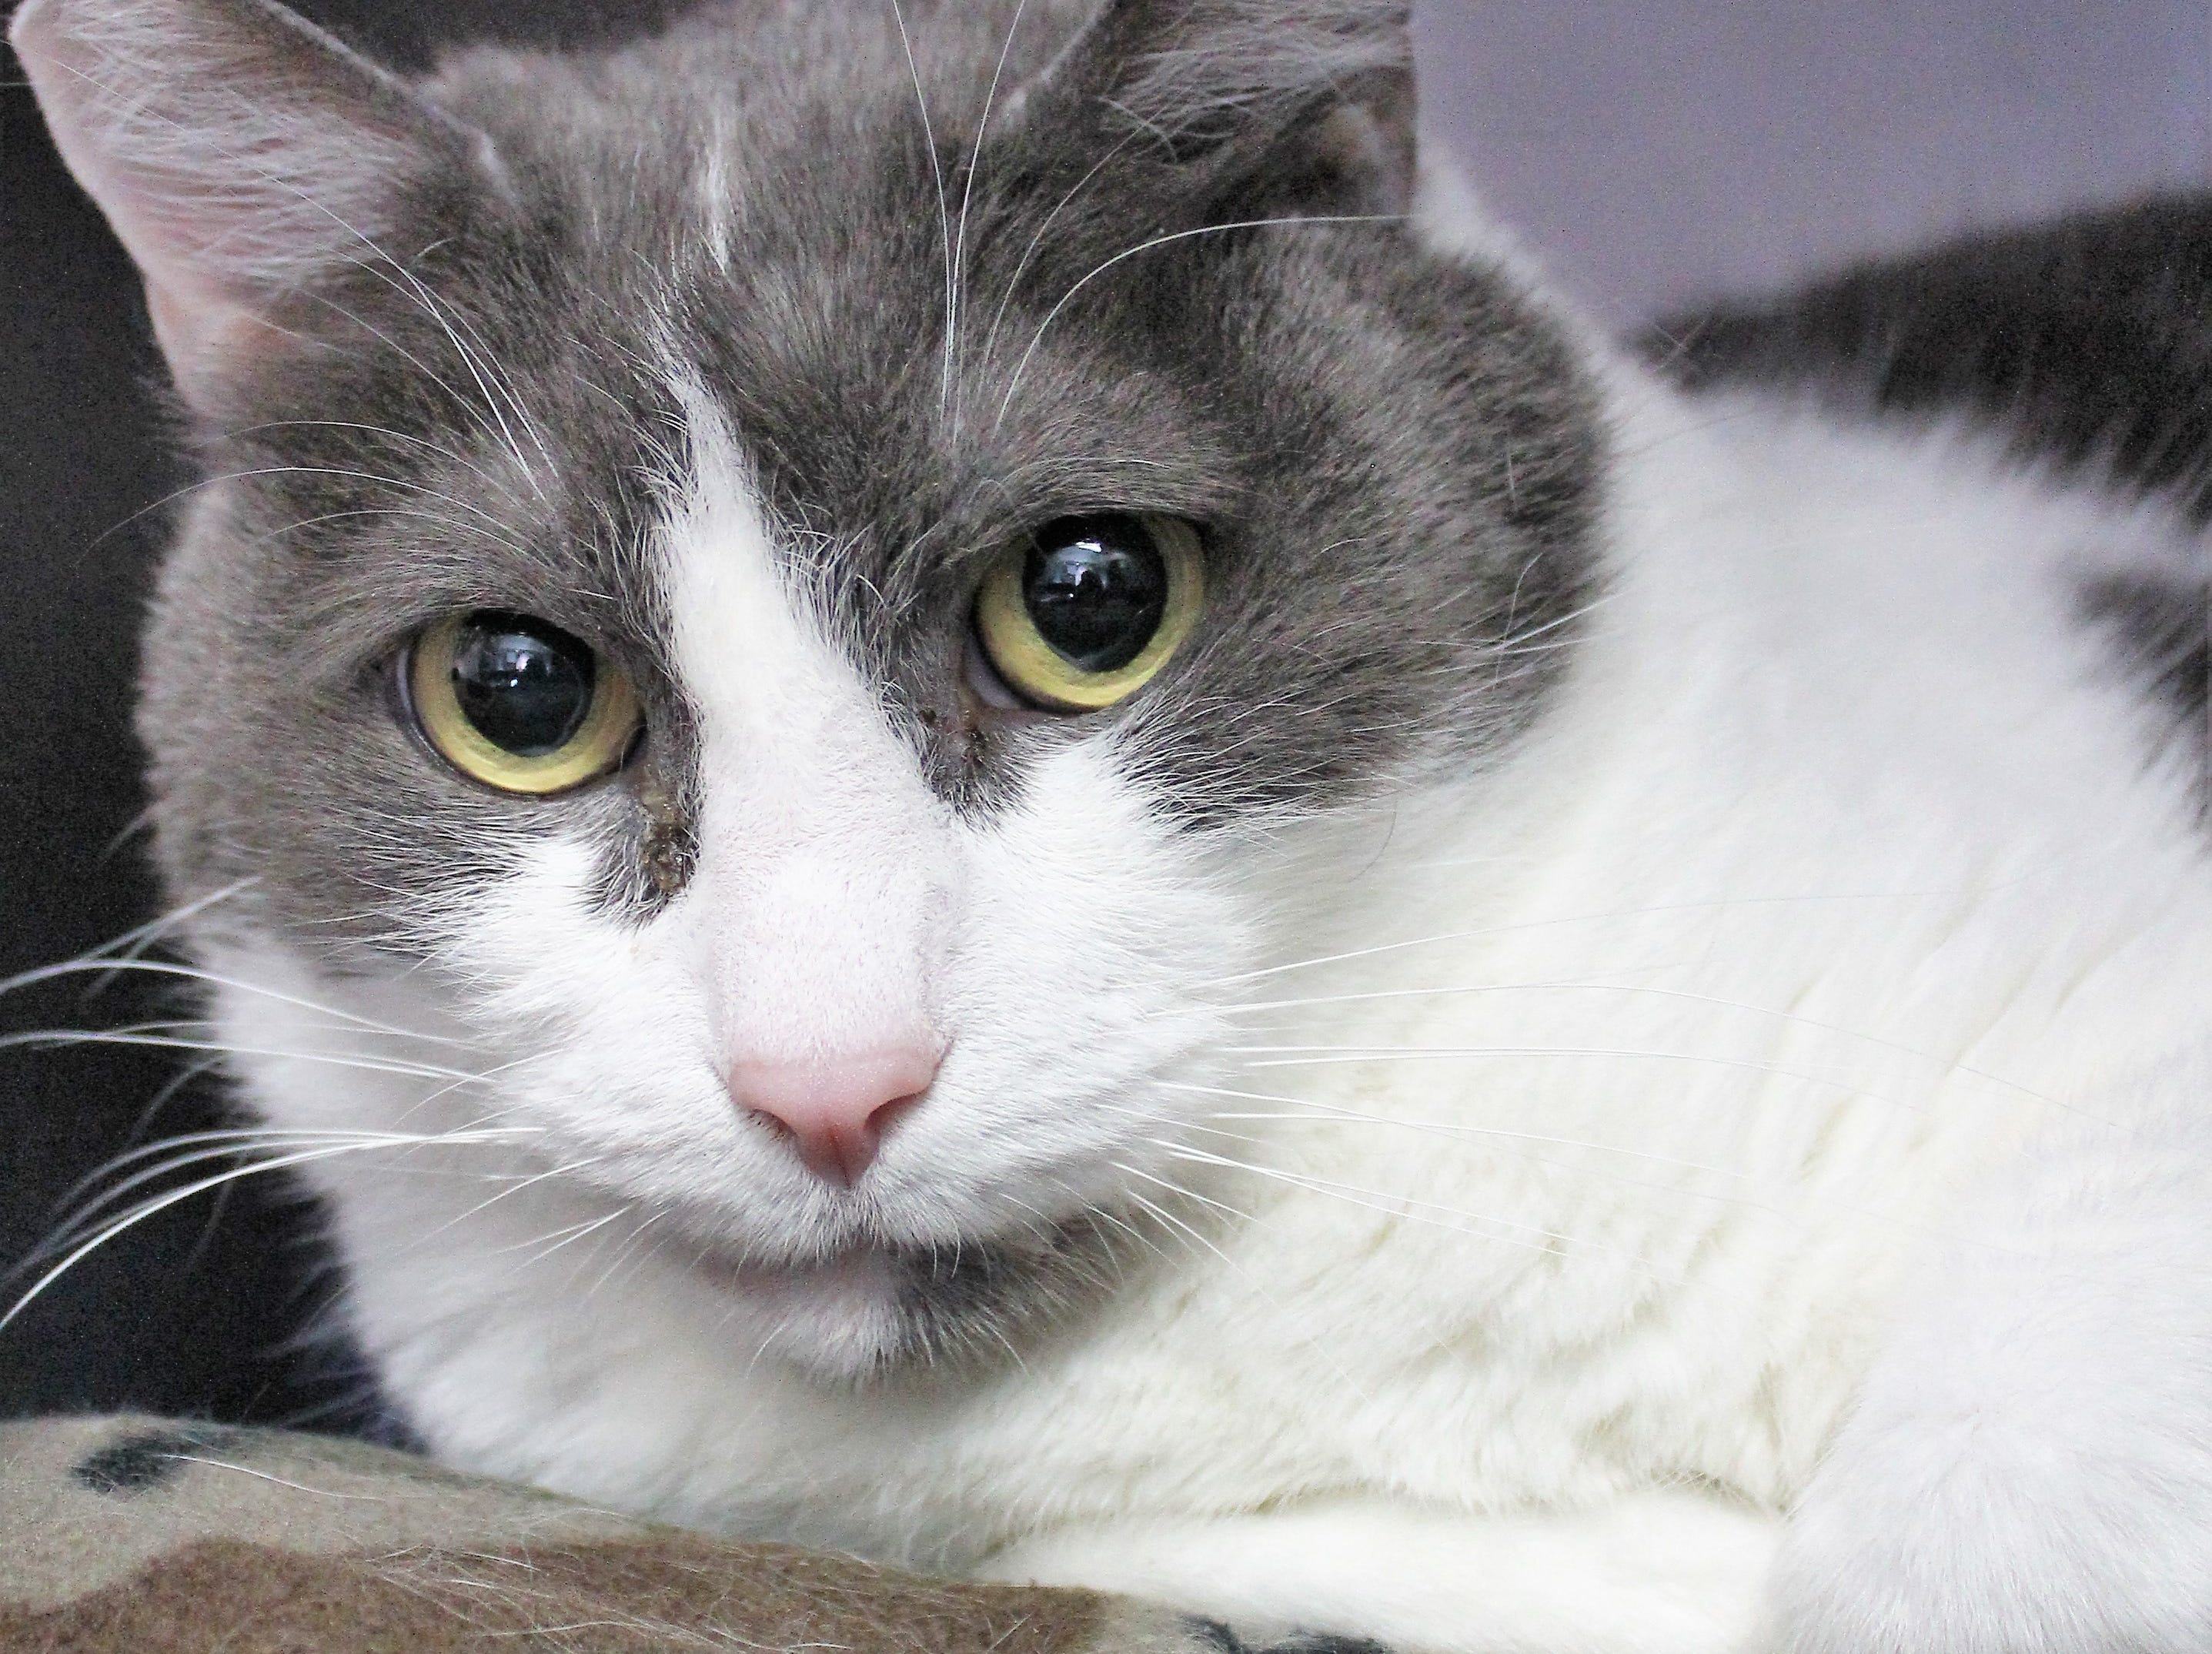 Chandler is a 7-year-old domestic shorthaired male. He is cuddly and sweet with people he knows well, and he enjoys the company of other cats. Little people worry him, so Chandler hopes to be part of an adult-only home. To find out more, call Willamette Humane Society at 503-585-5900 or visit www.whs4pets.org.